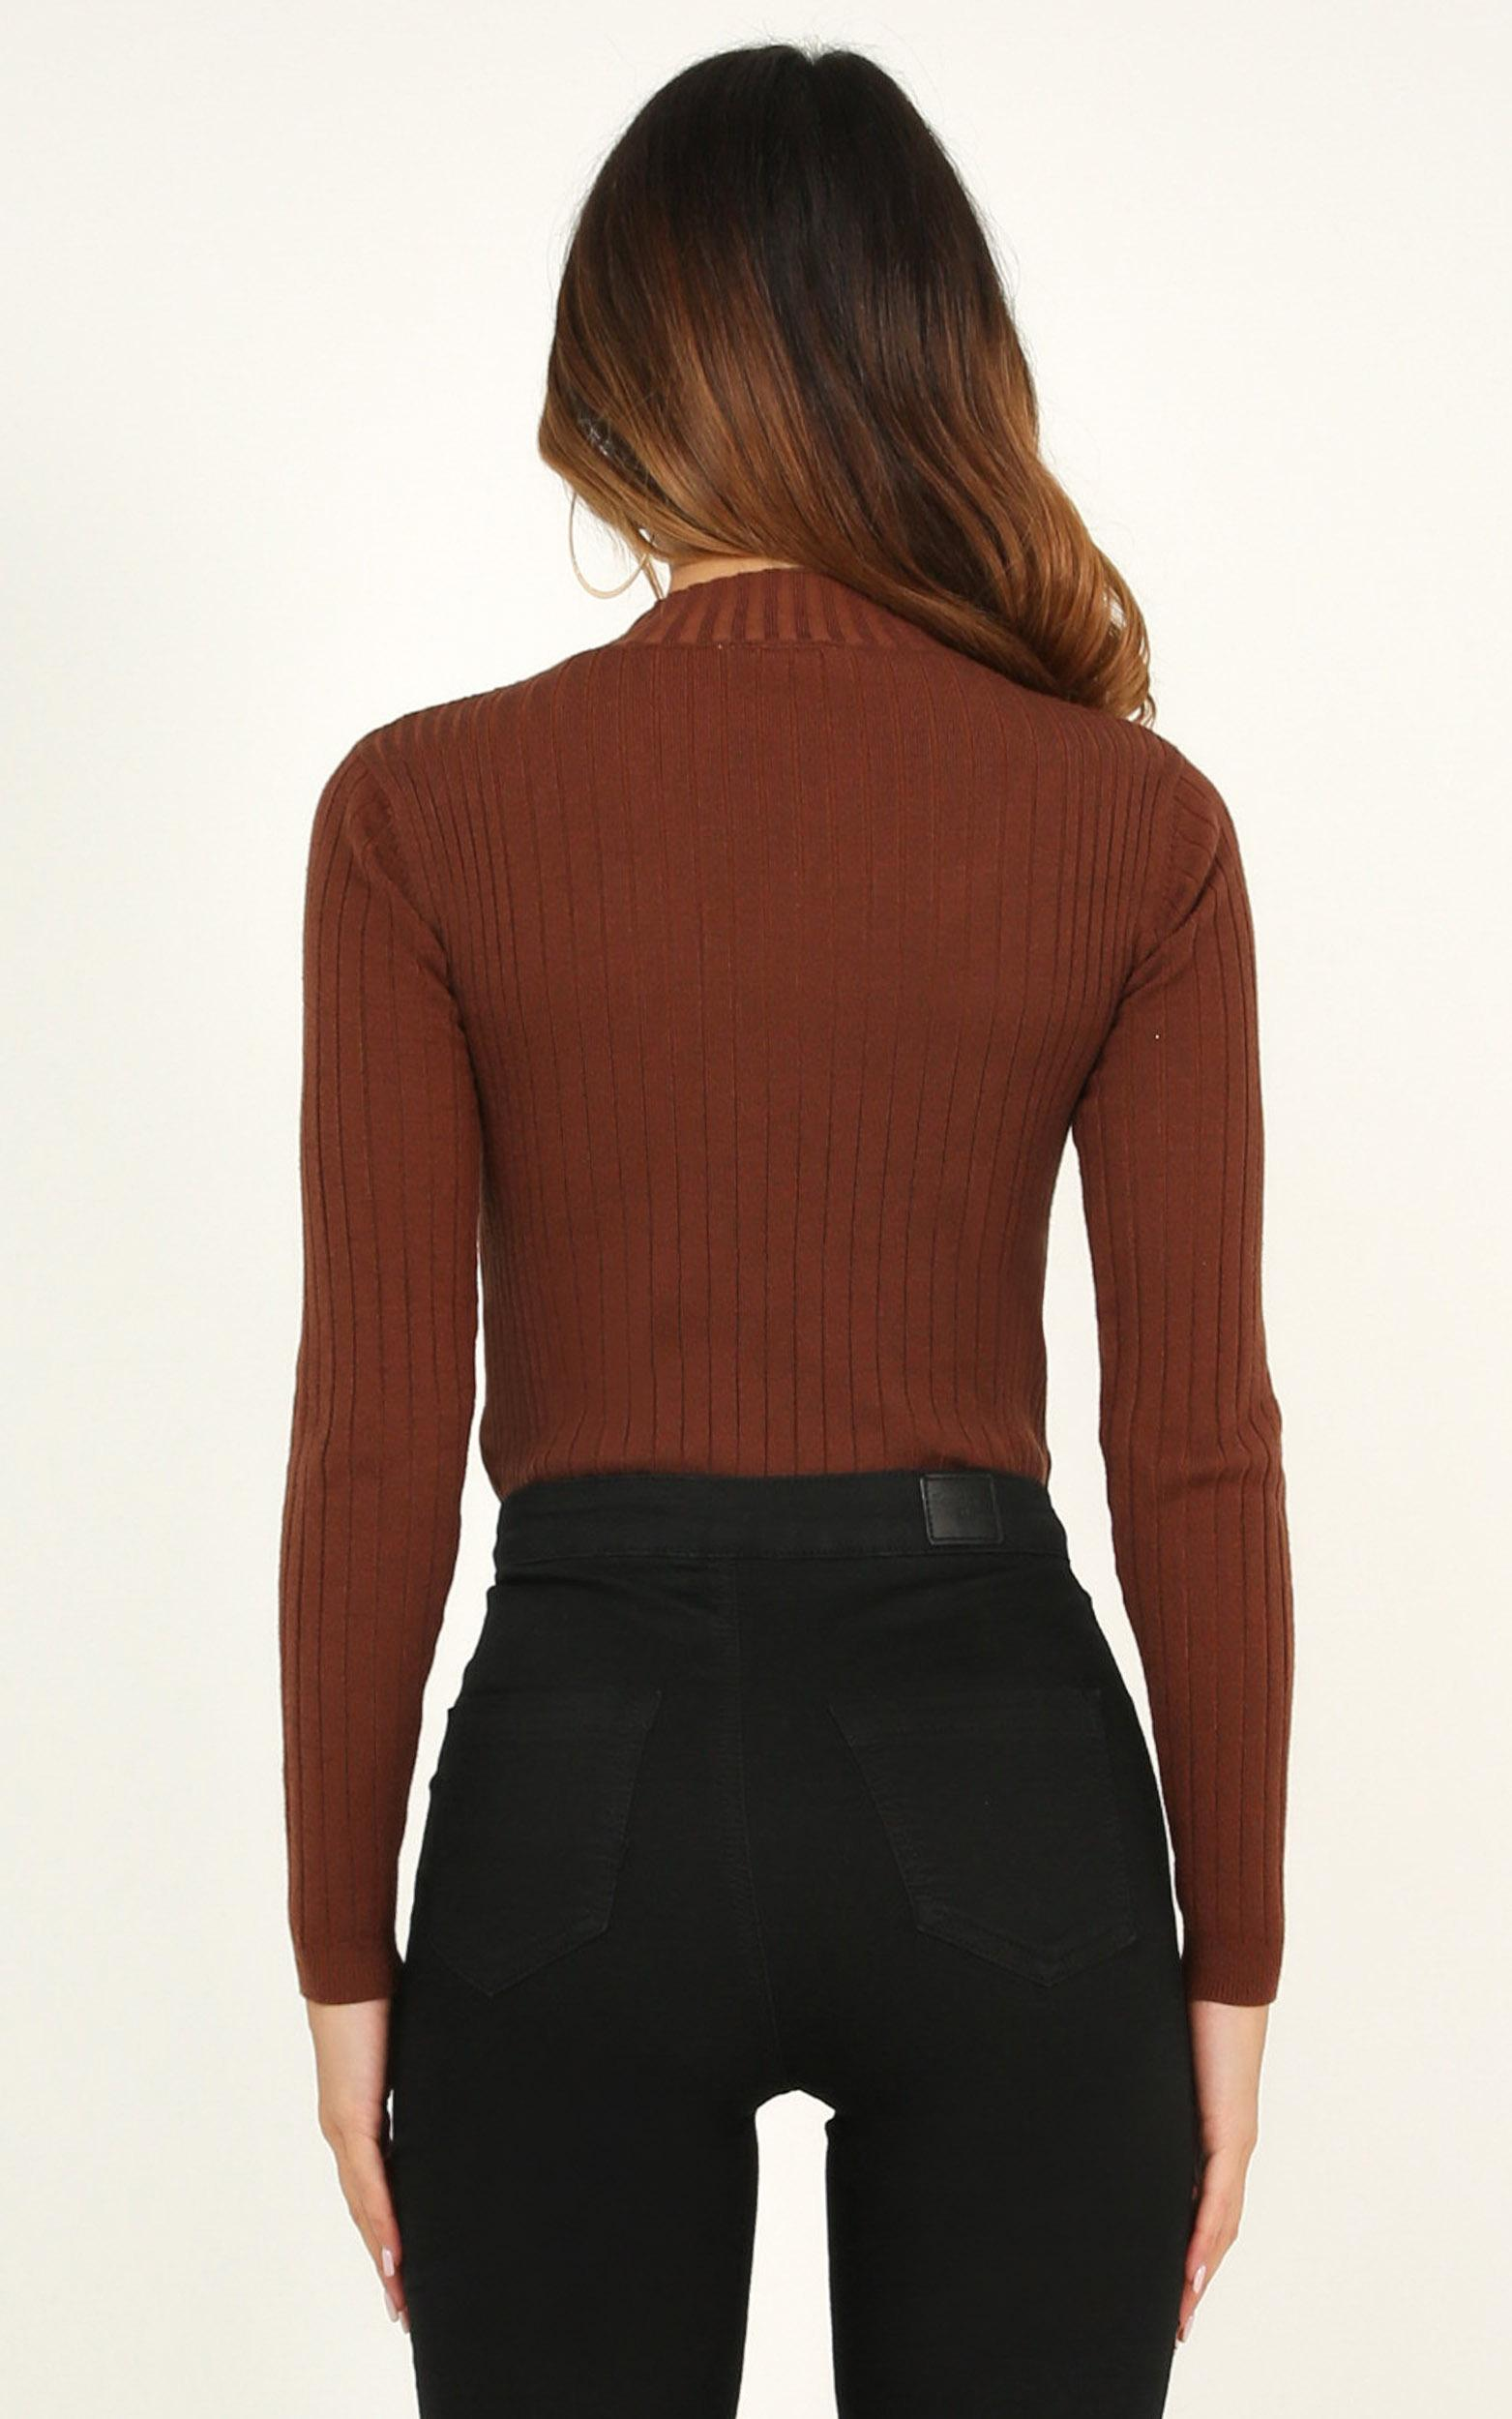 downtown dreams knit top in chocolate - 10 (M), Brown, hi-res image number null